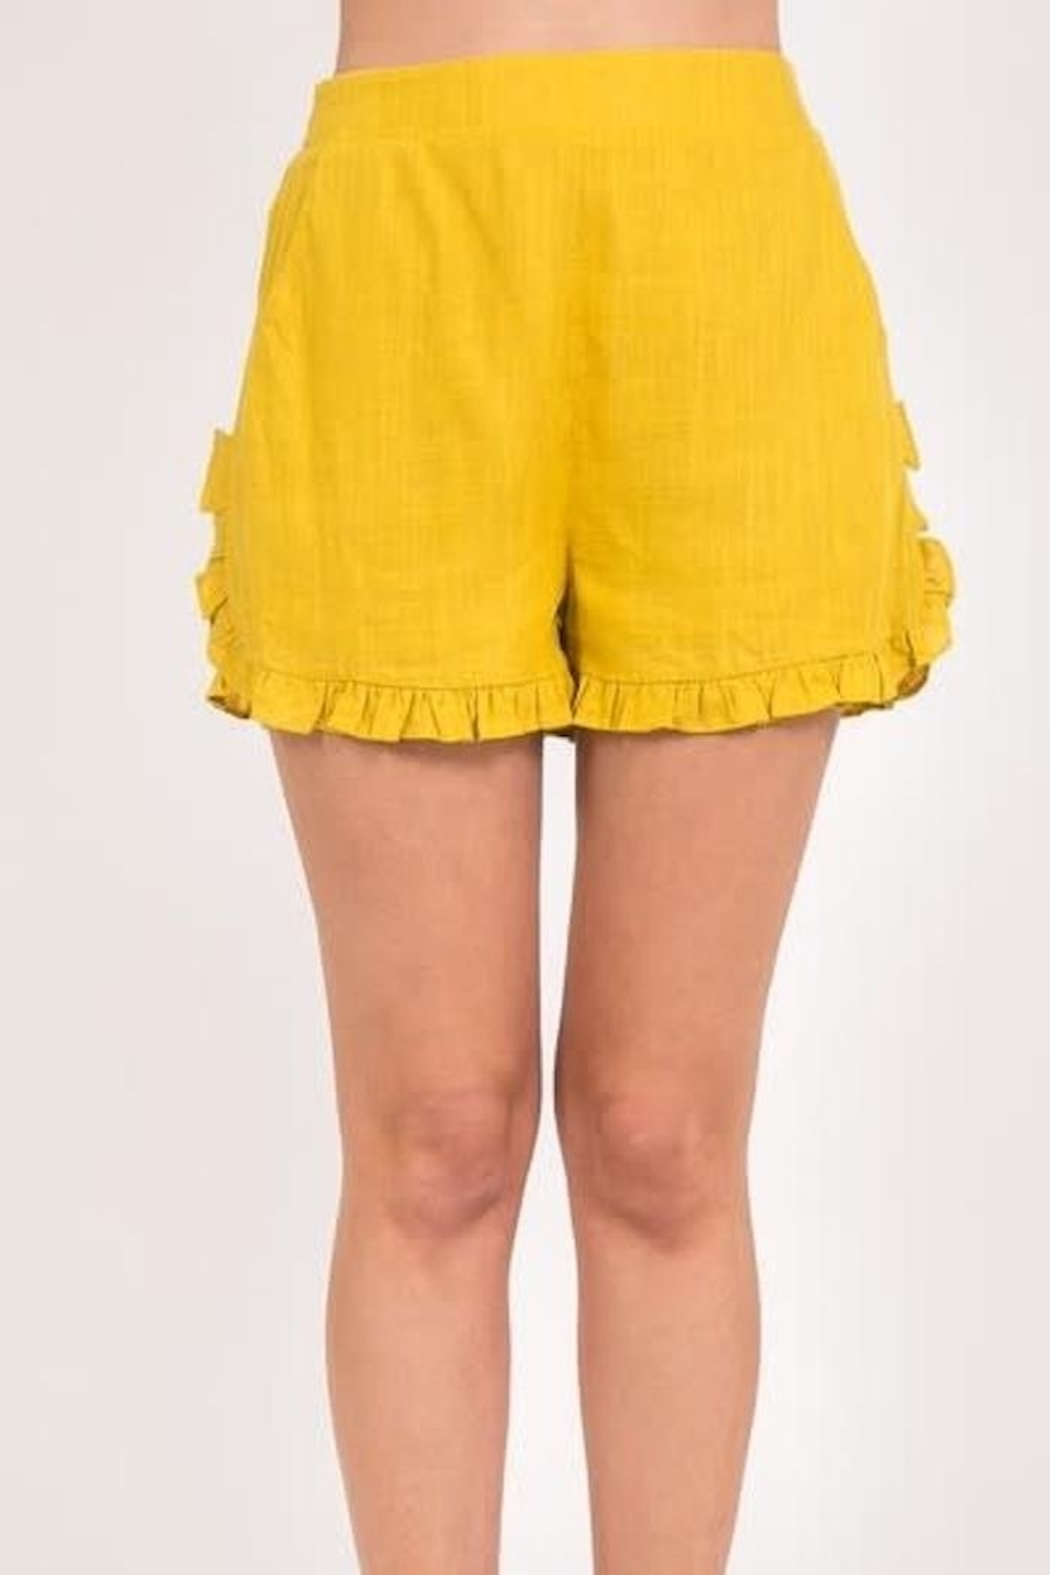 Very J Linen Ruffle Shorts - Main Image